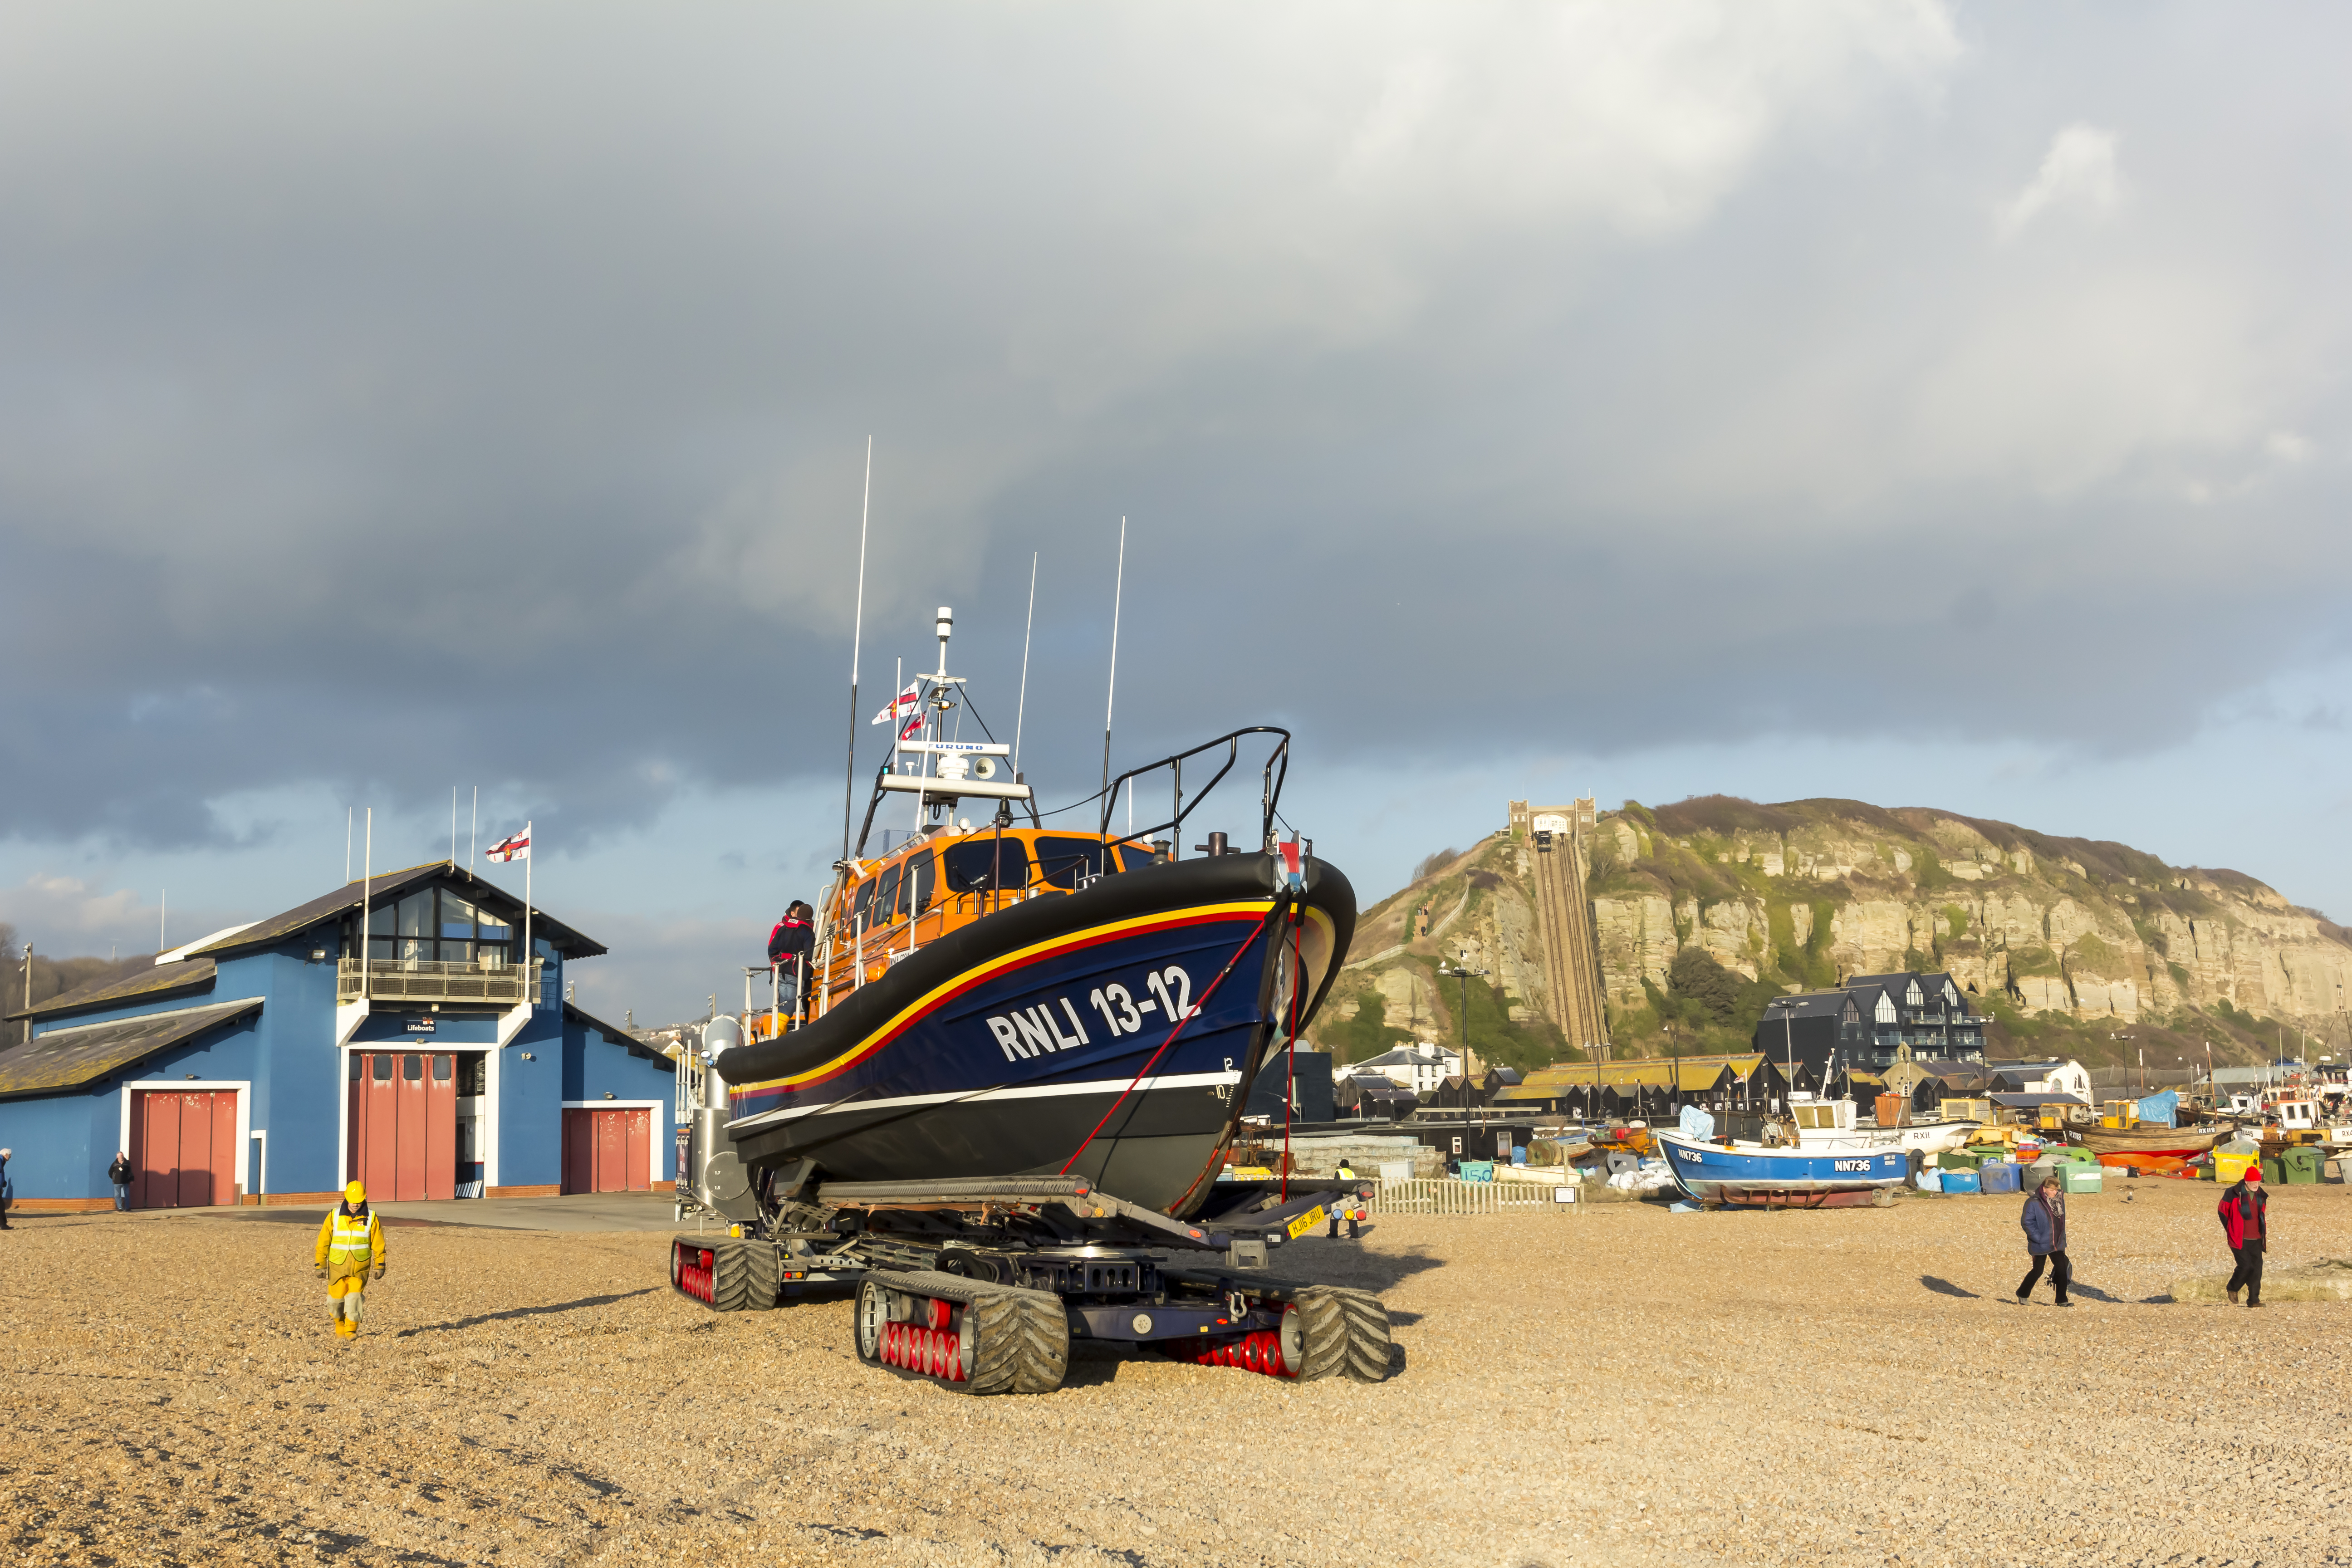 Rnlb cosandra, a shannon class lifeboat, visits hastings lifeboat station. photo